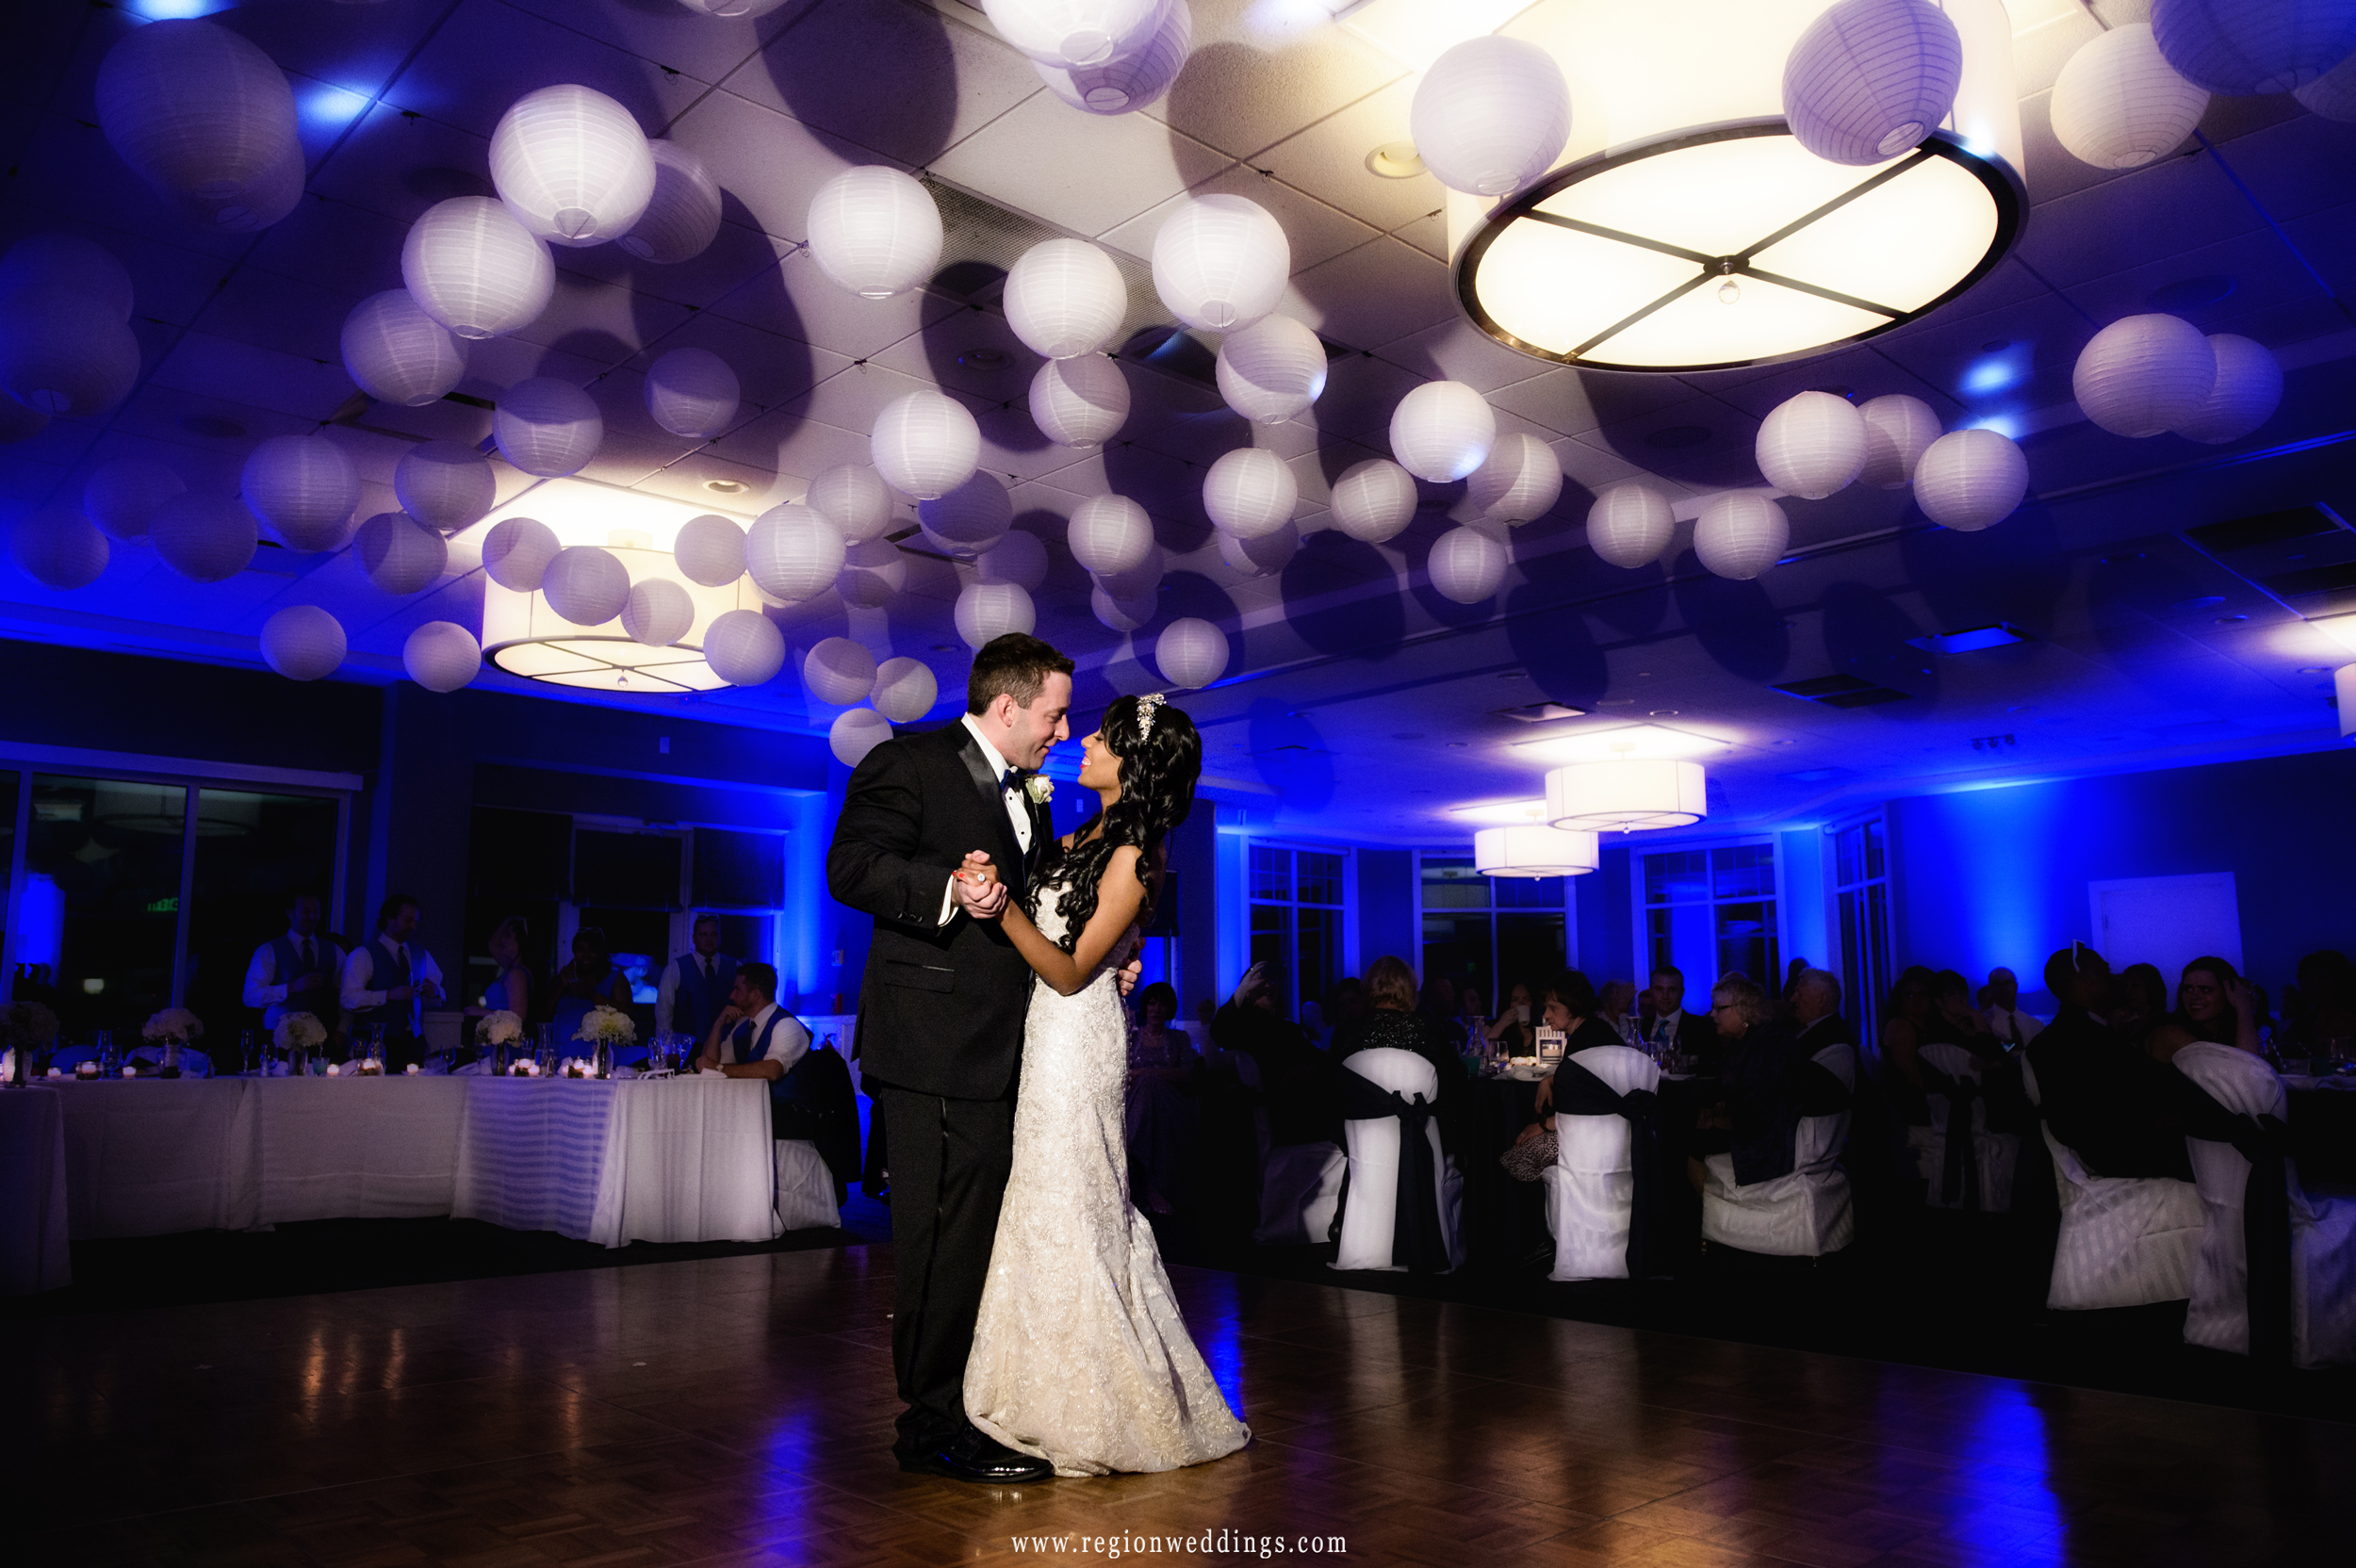 First dance for the bride and groom at Lighthouse Restaurant in Cedar Lake, Indiana.